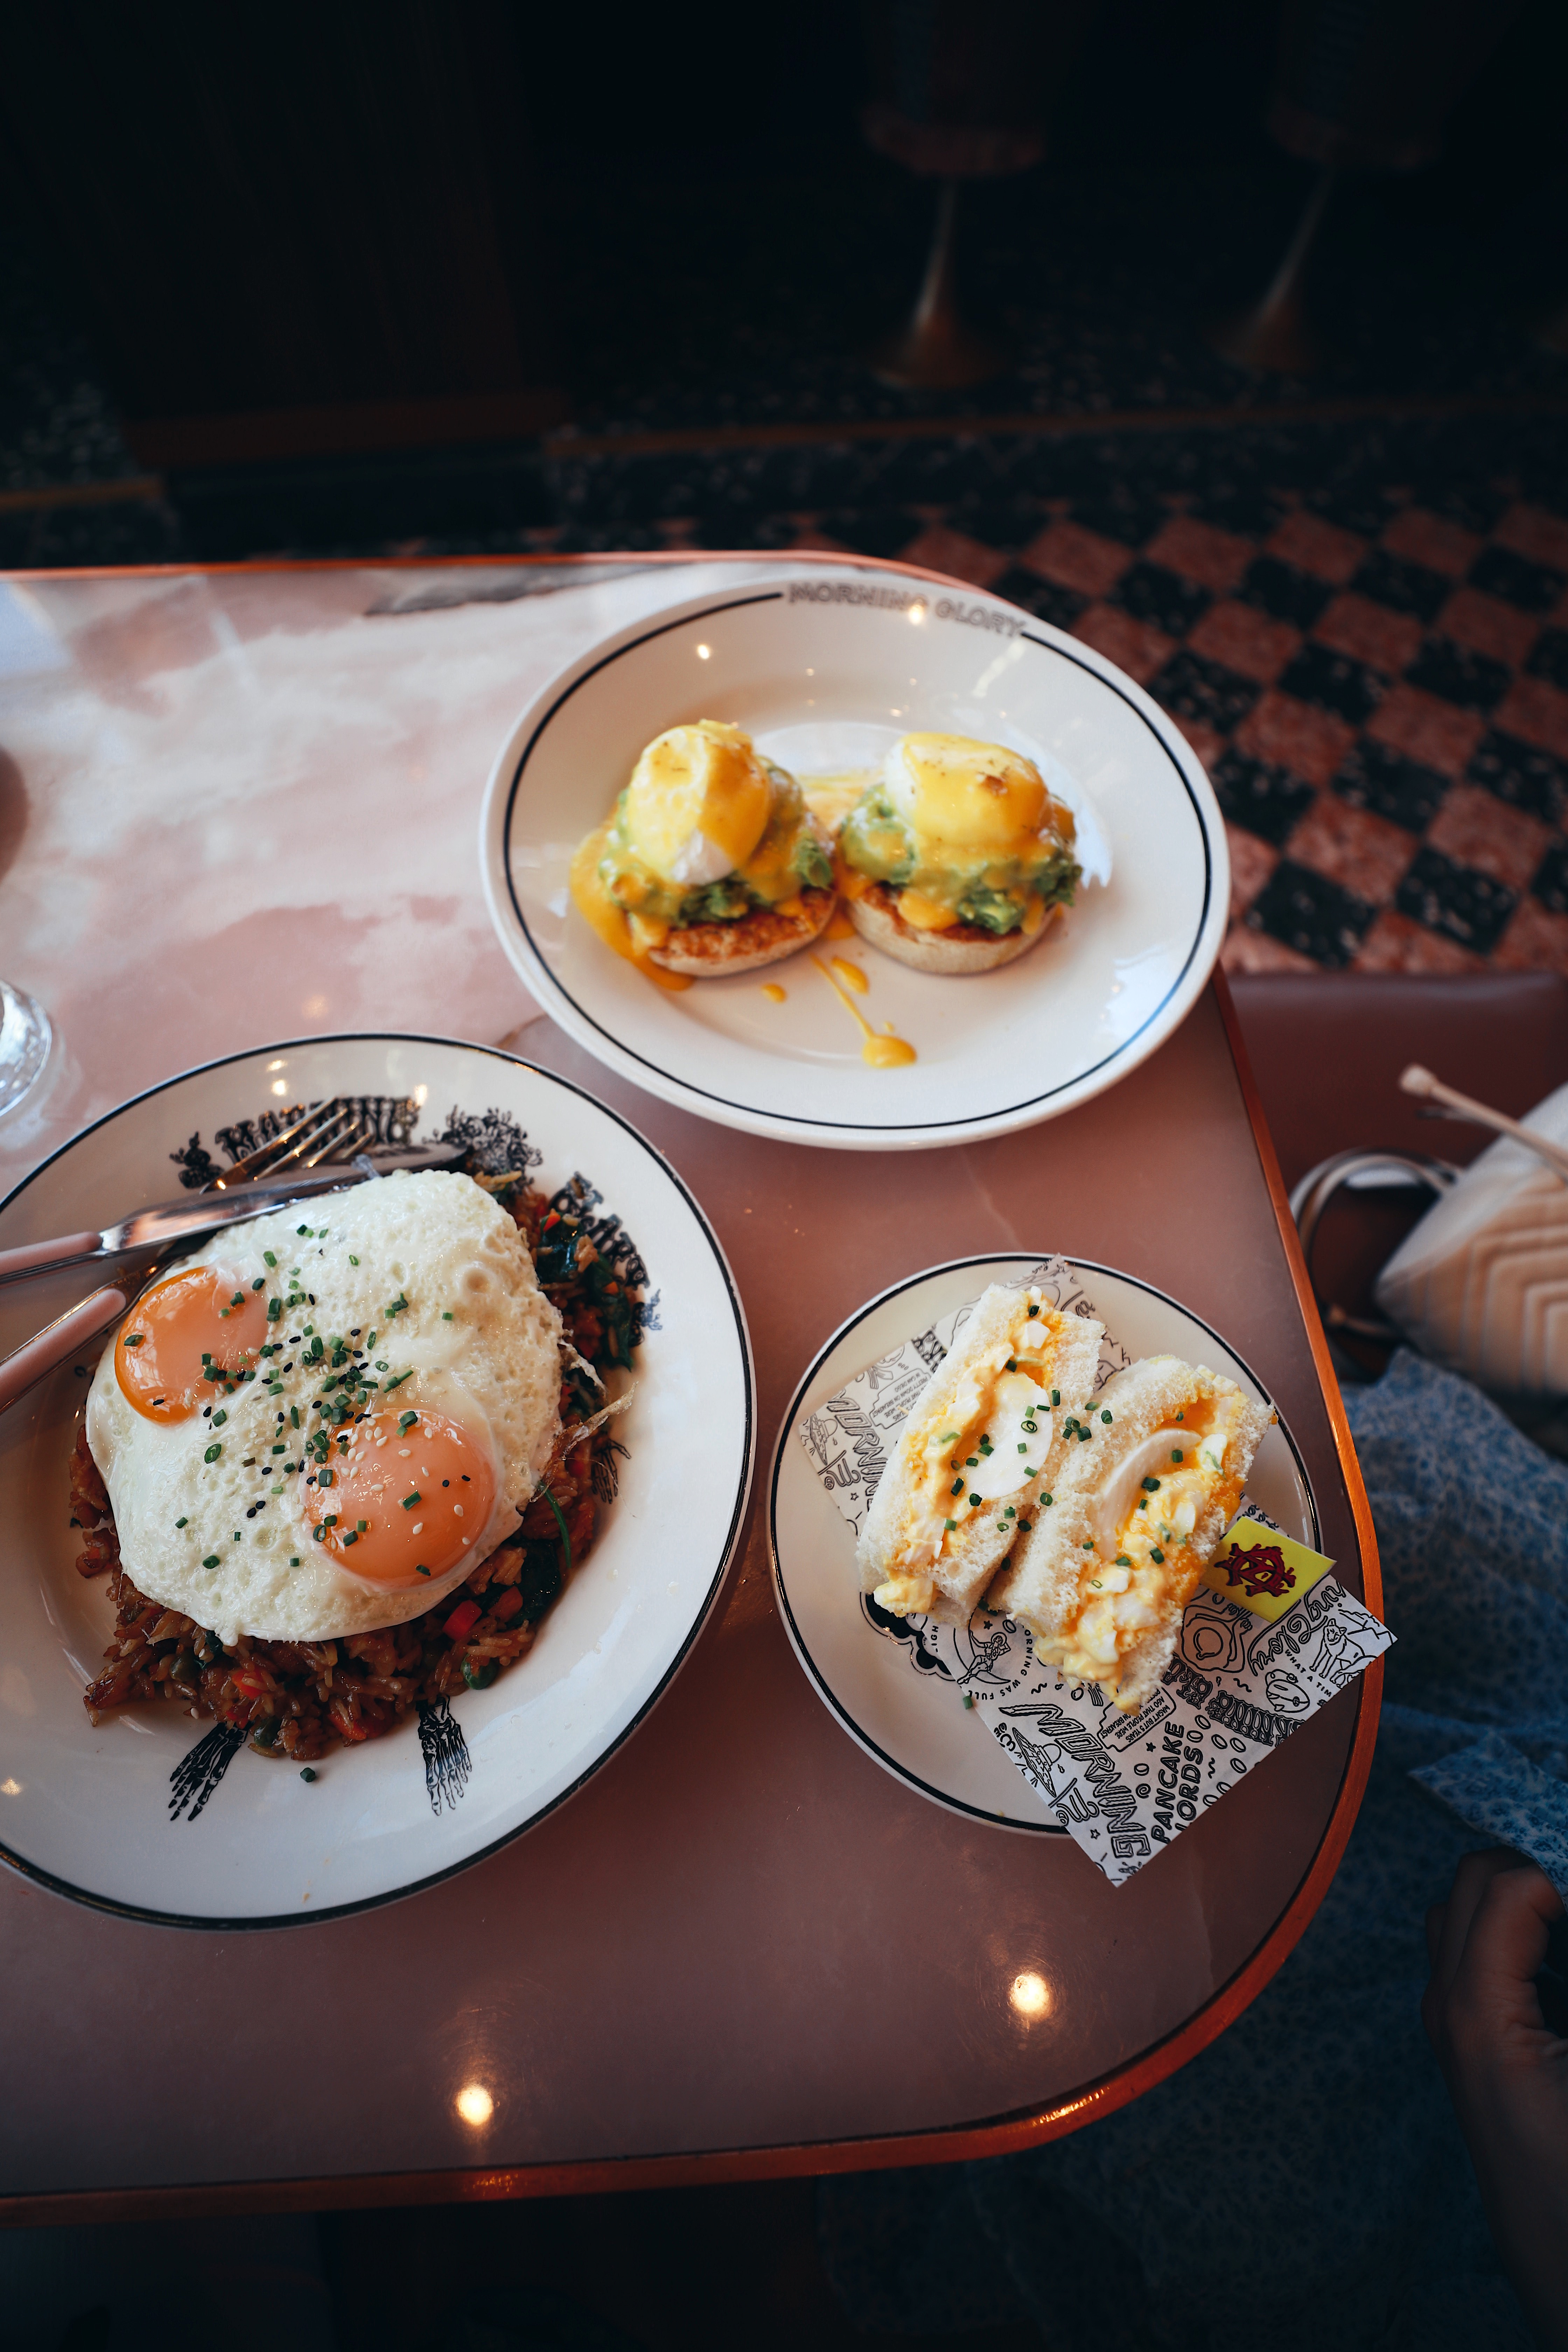 a foodies guide to the beset bites in la jolla, like this breakfast spread of eggs and toast and hash browns